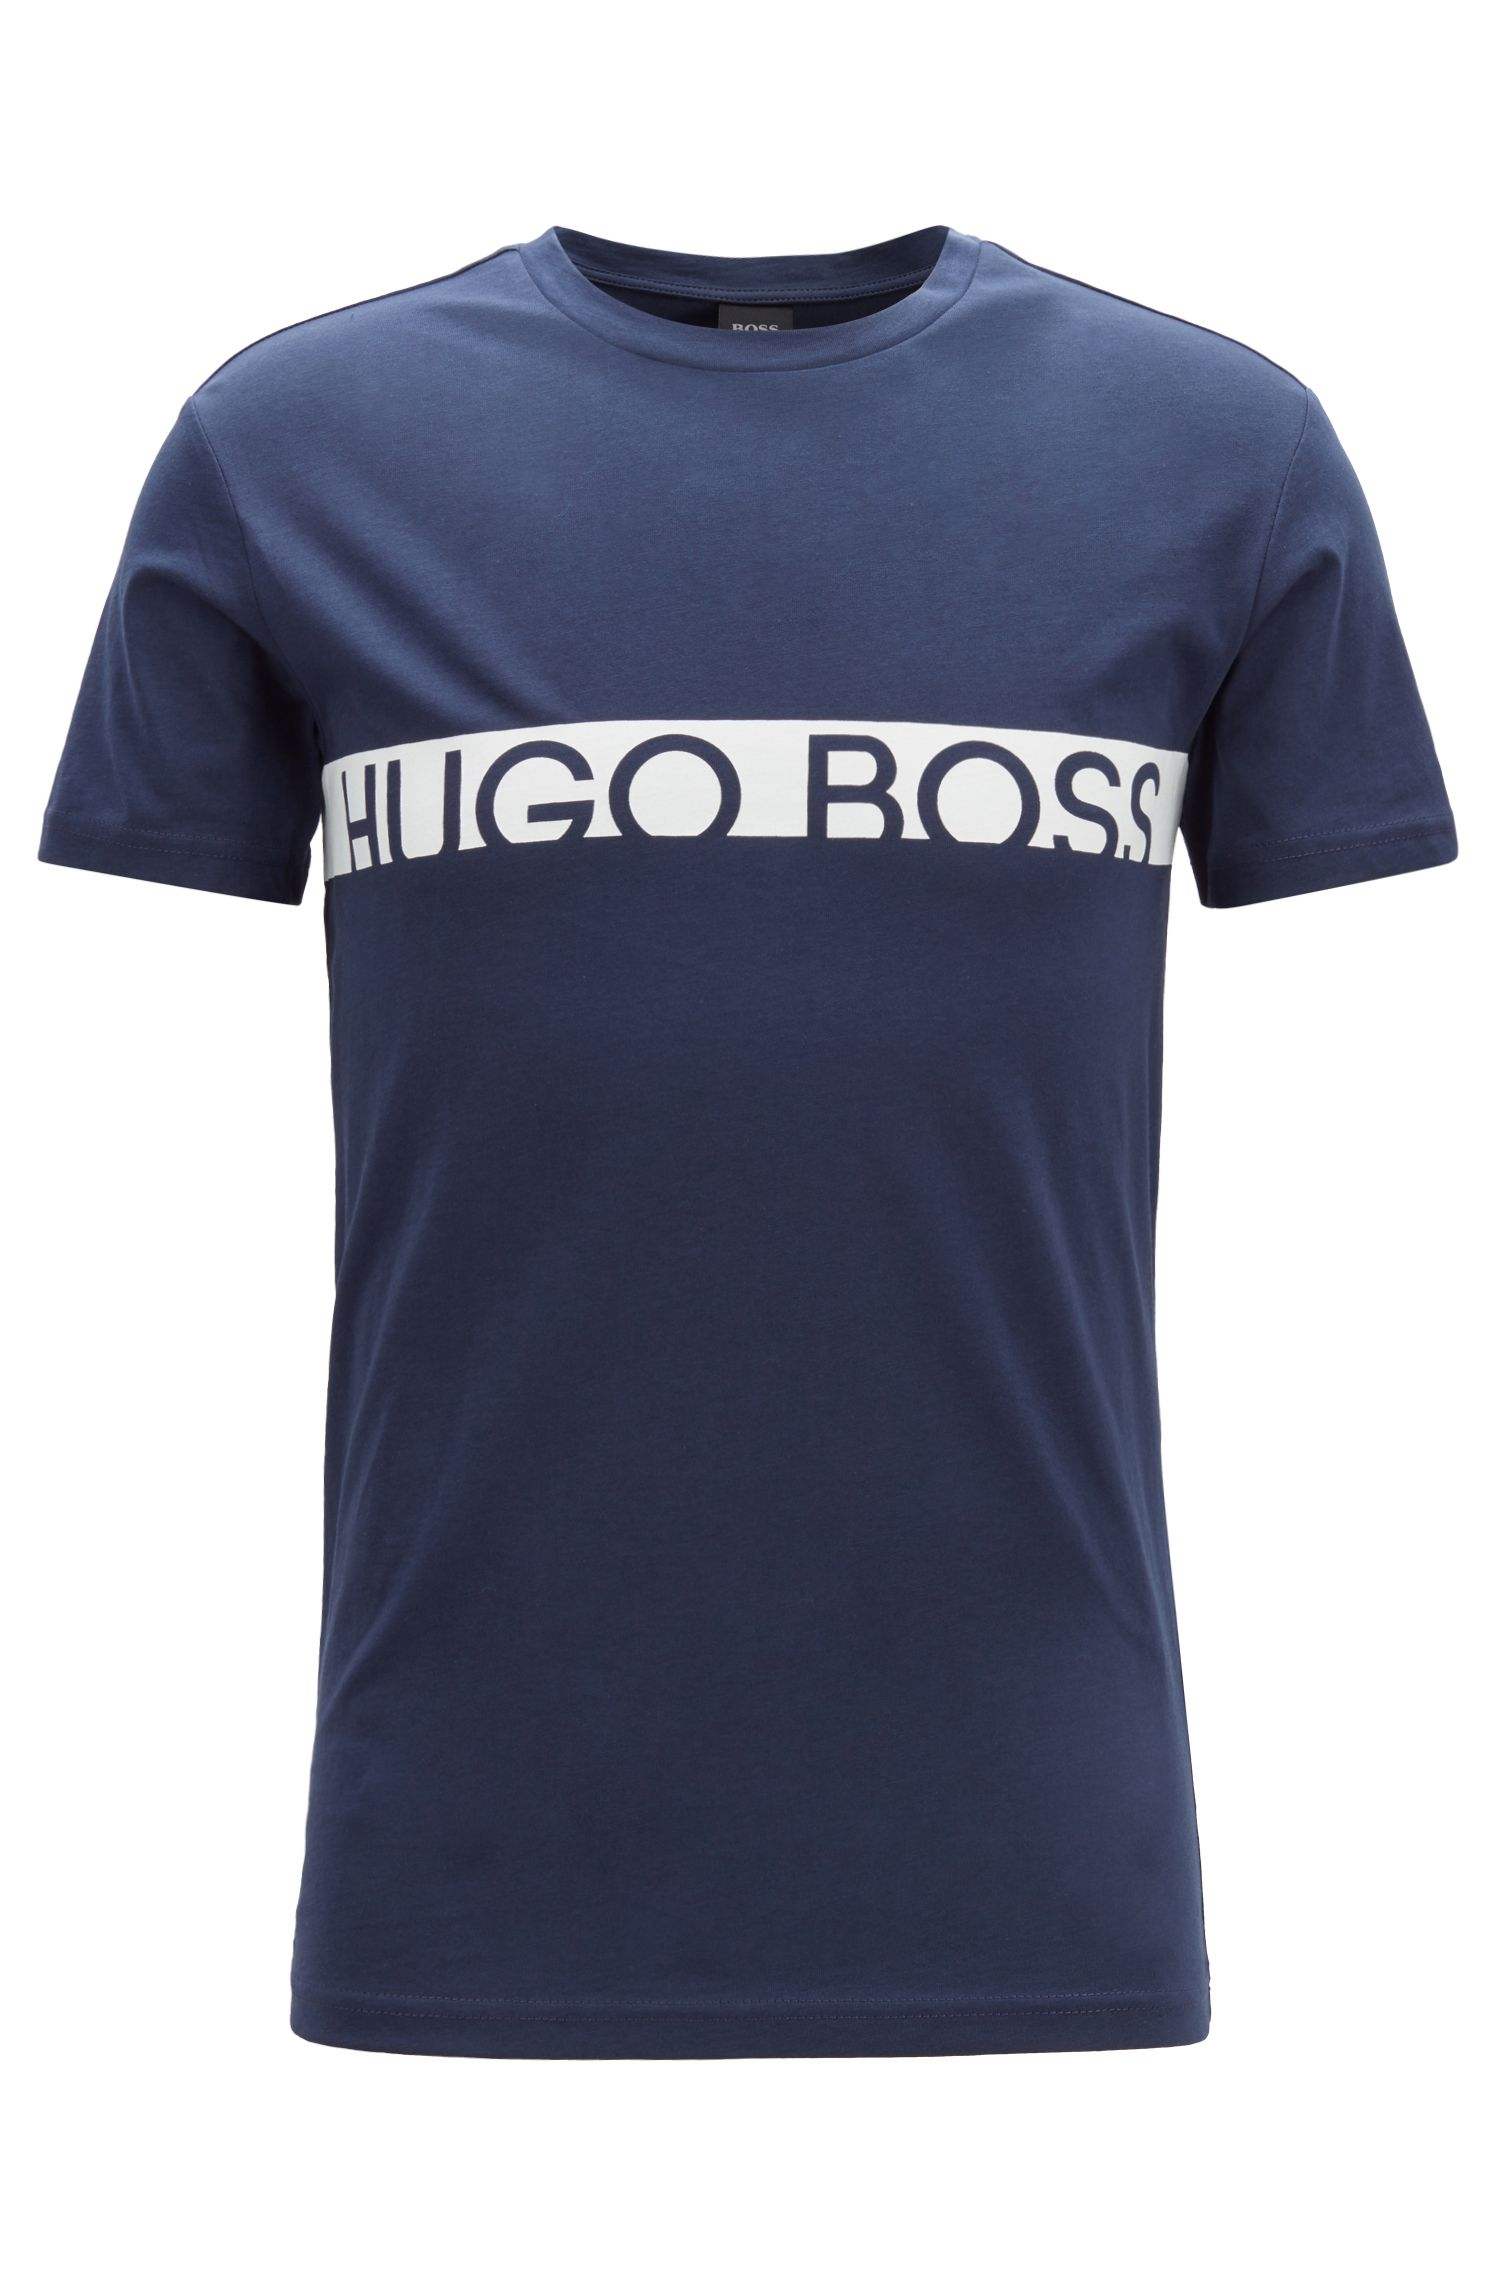 T-shirt slim fit con logo e finitura UPF50+, Blu scuro